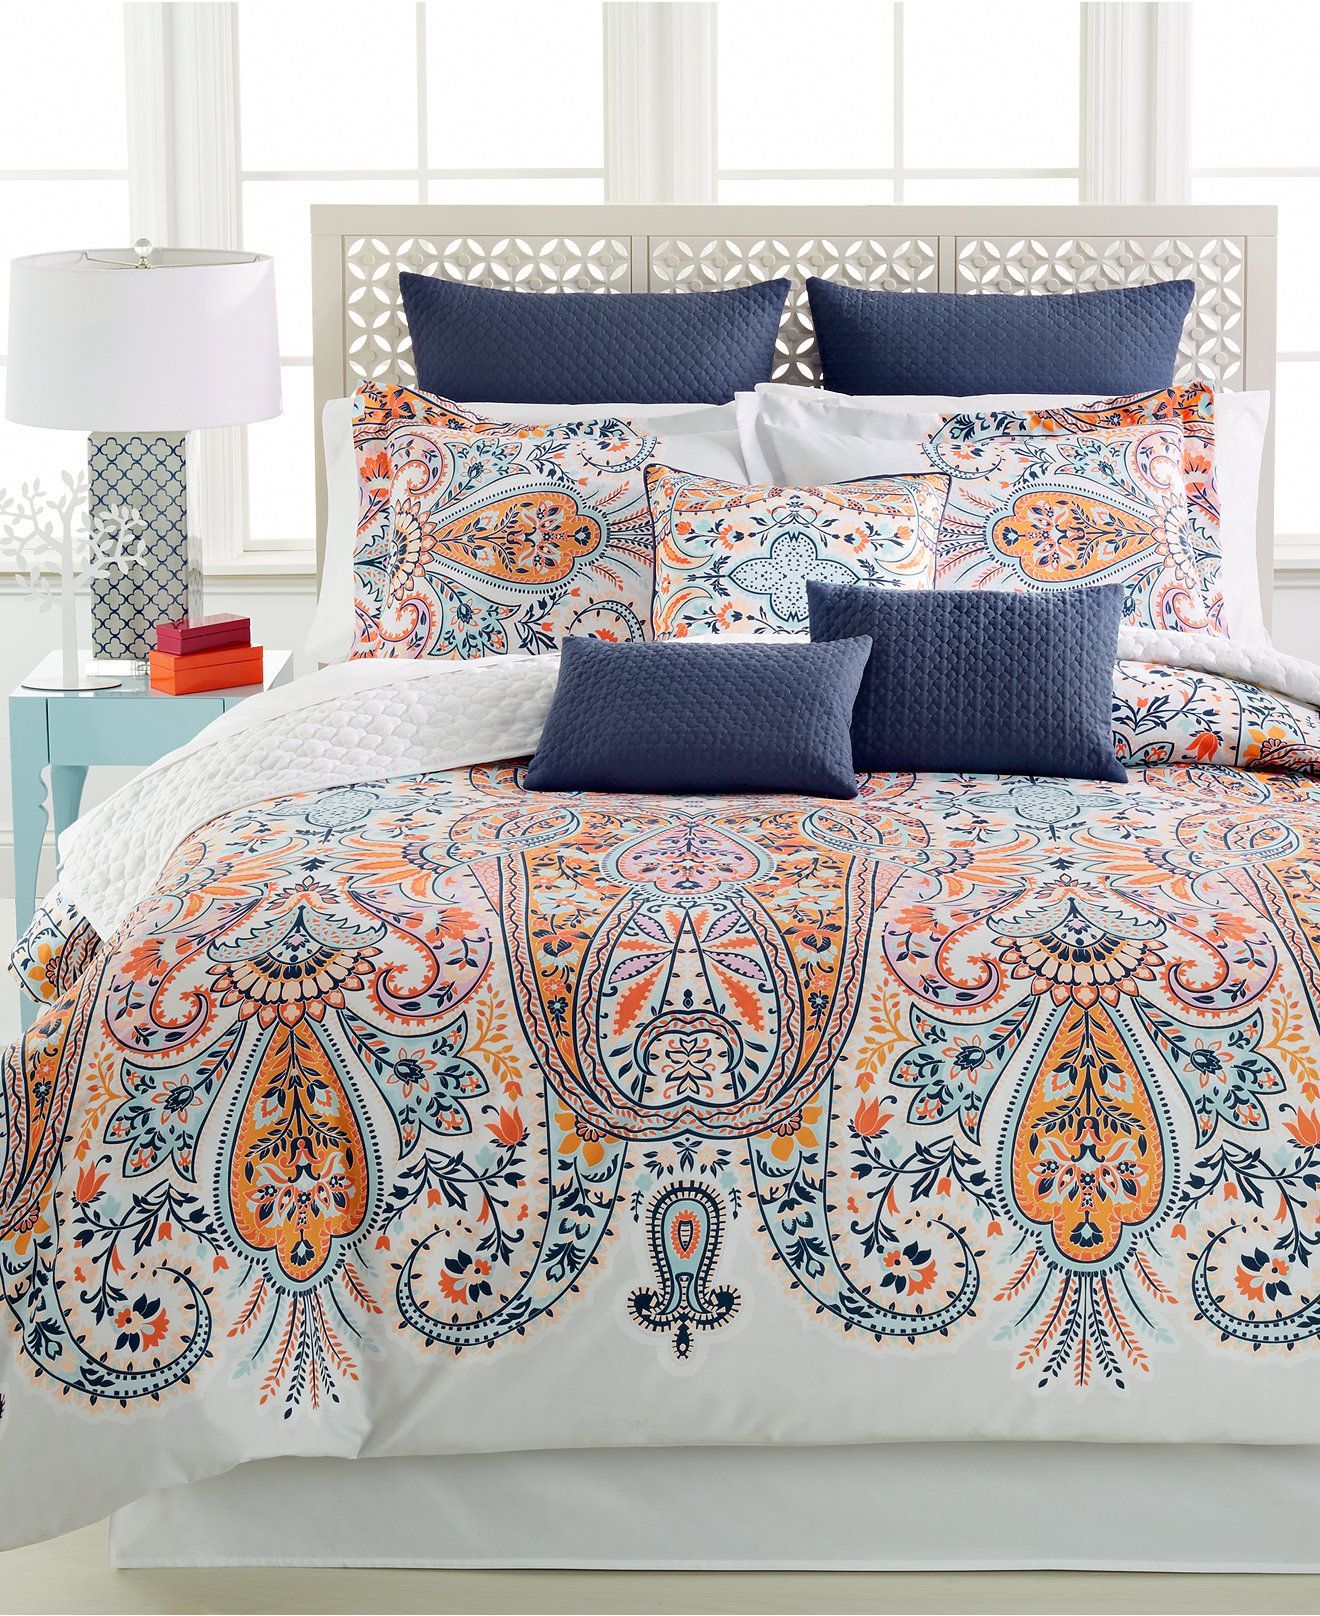 taylia reversible 10-pc. comforter set - bed in a bag - bed & bath